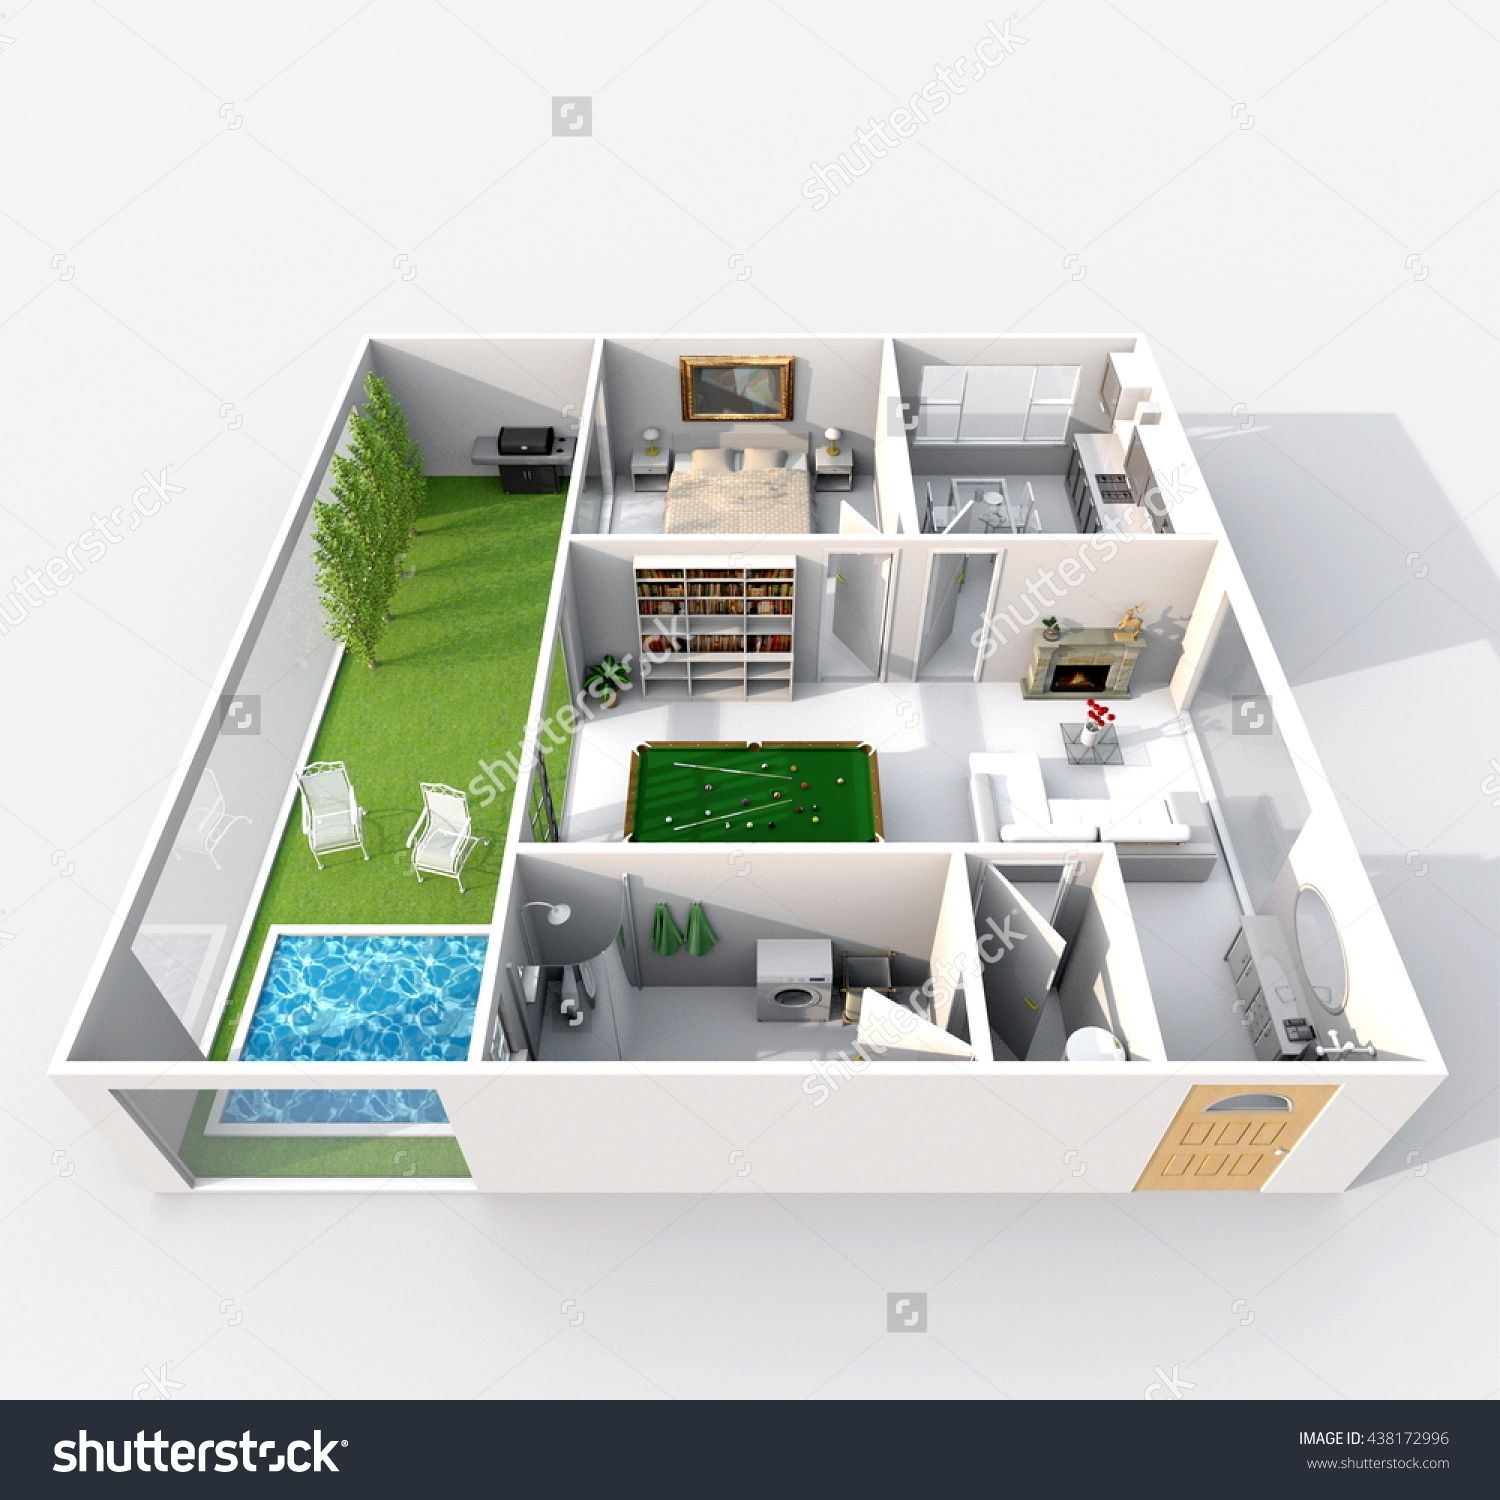 3d interior rendering perspective view of furnished home apartment with green patio and swimming pool: room, bathroom, bedroom, kitchen, living-room, hall, entrance, door, window,